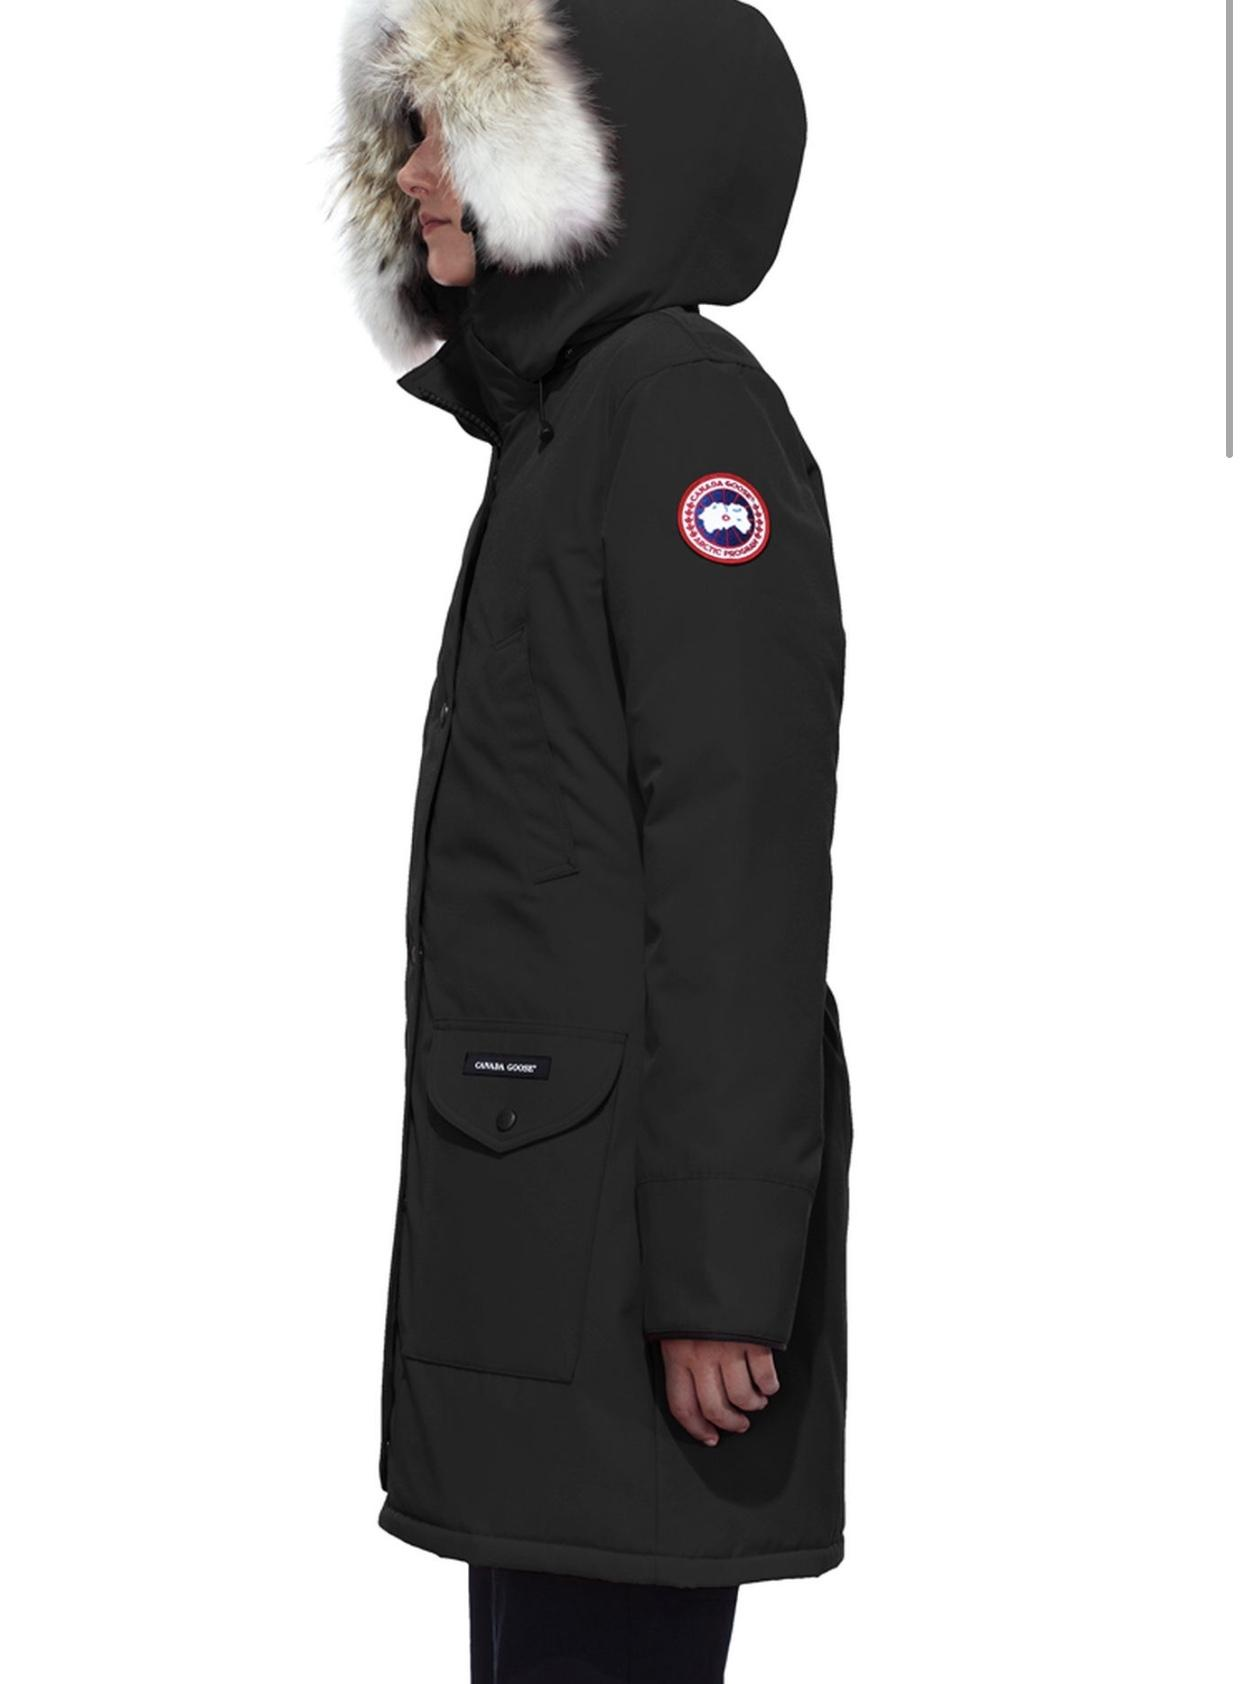 Canada goose jacket for sale